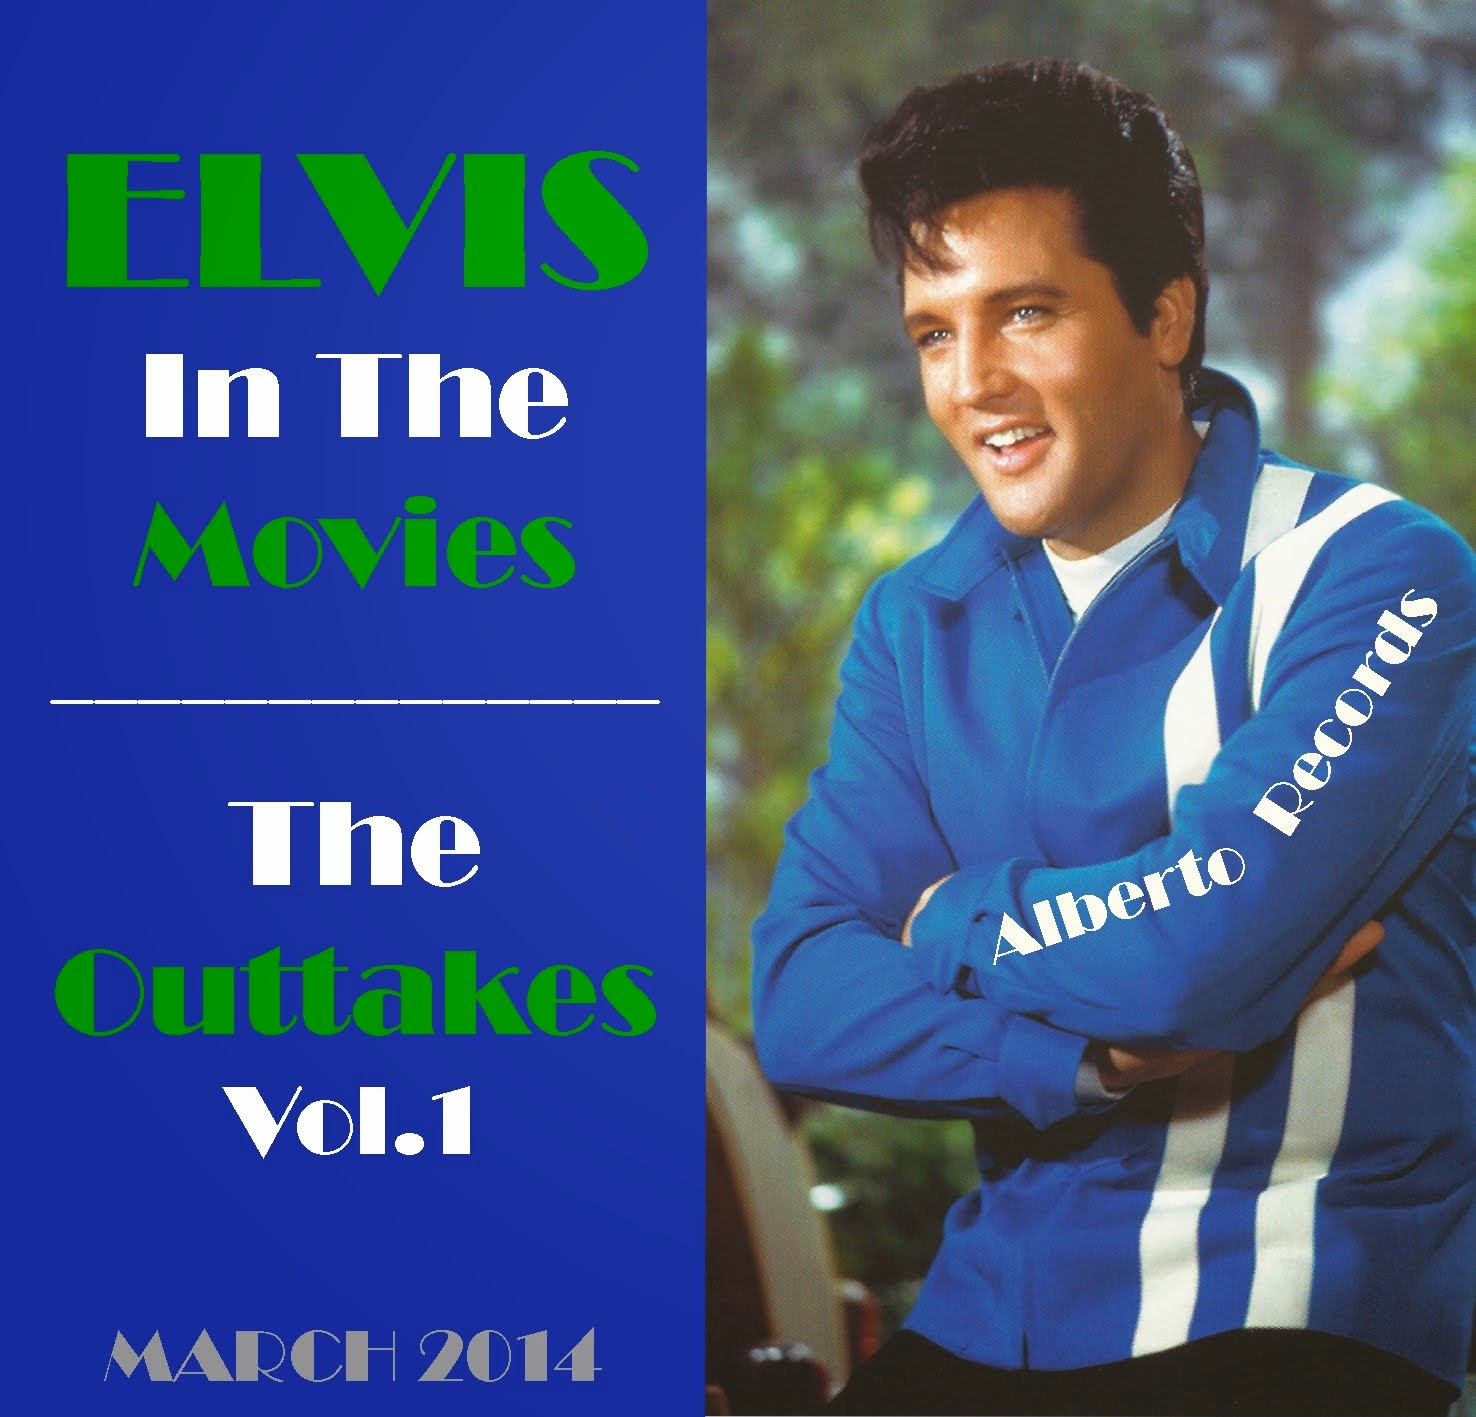 Elvis In The Movies - The Outtakes Vol. 1 (March 2014)